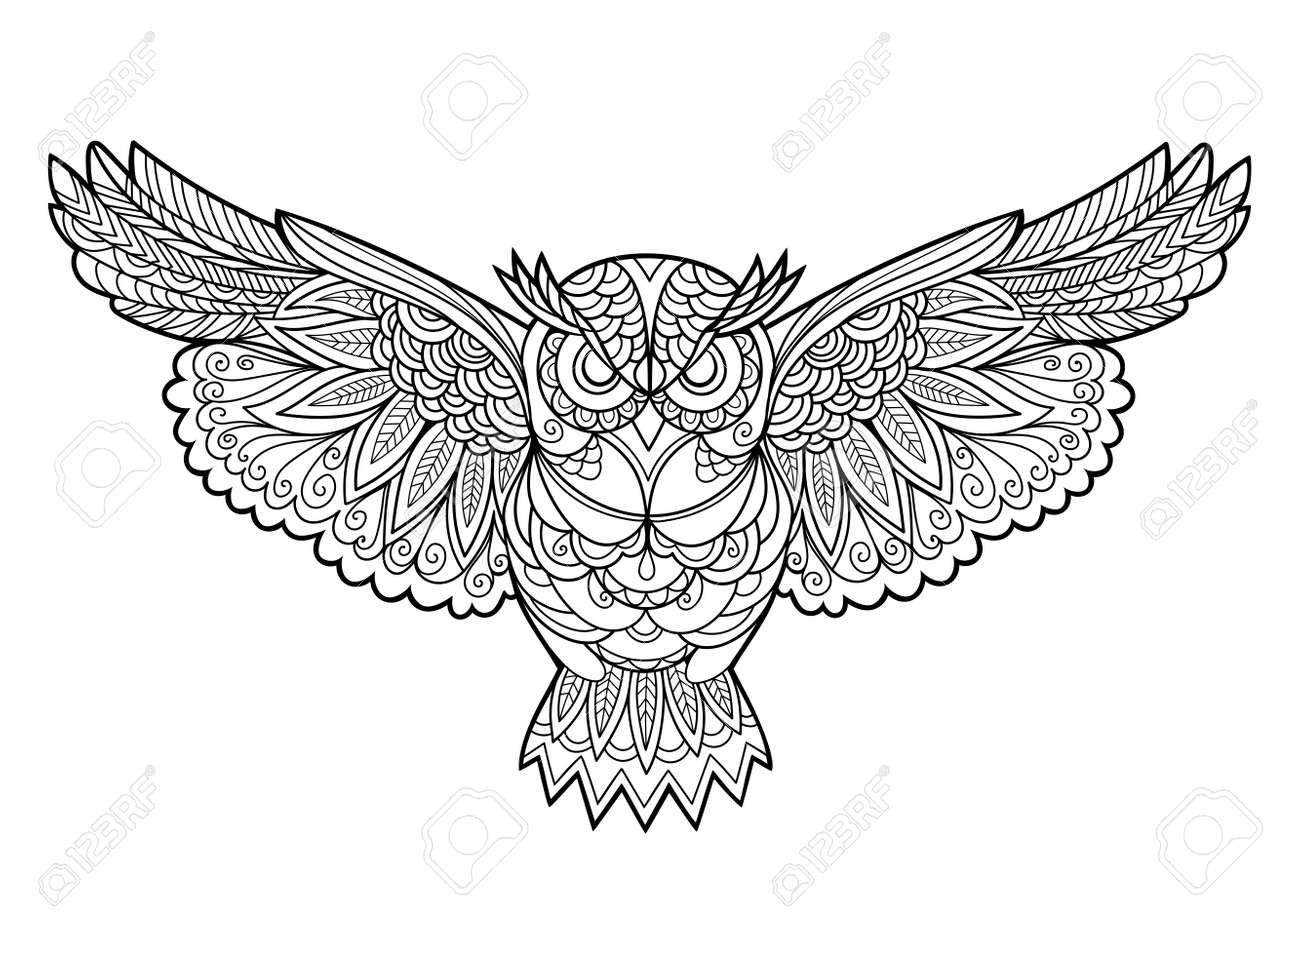 Owl bird coloring book for adults vector illustration. Anti-stress coloring for adult. Zentangle style. Black and white lines. Lace pattern - 53079859